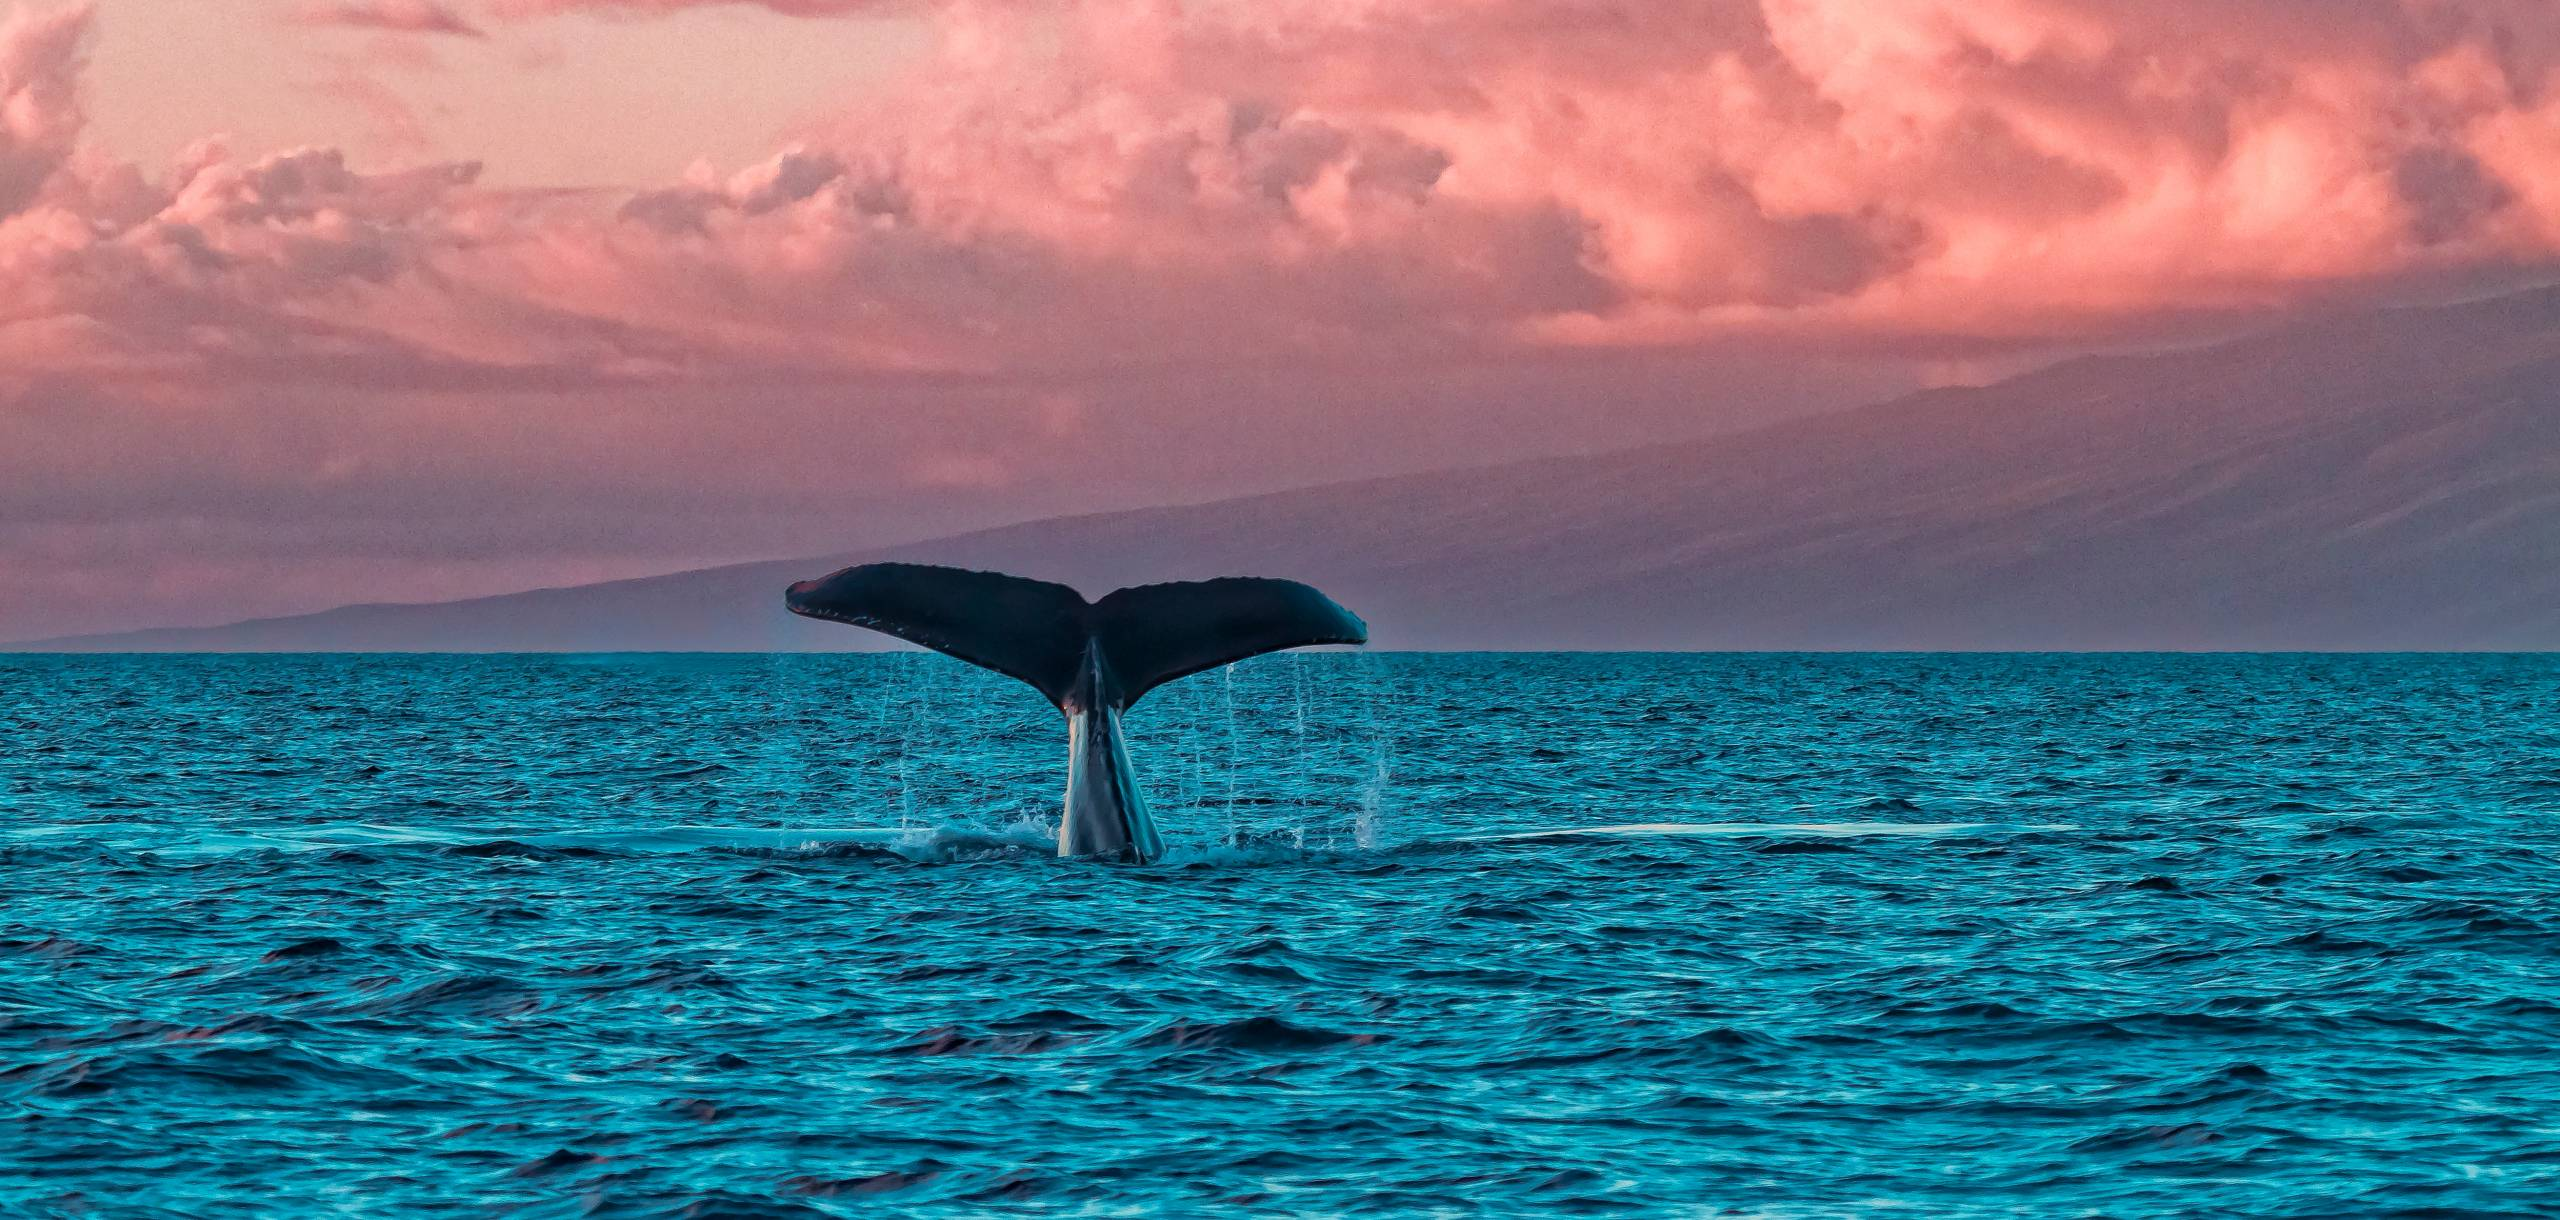 Whale at Sunset in Maui Hawaii